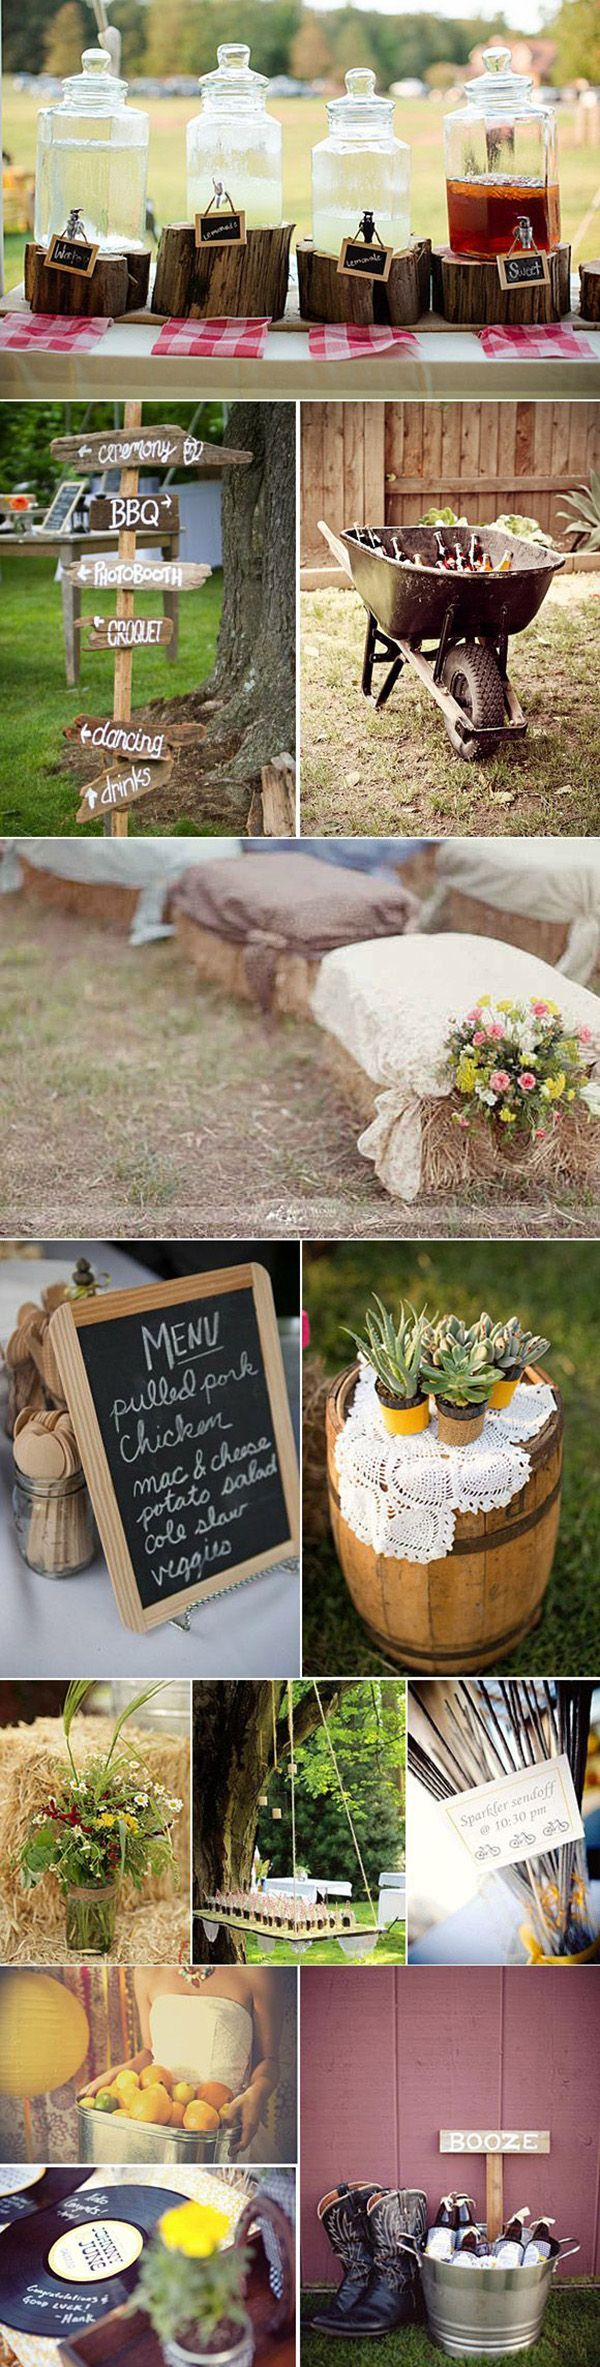 Love the hay bale benches  country rustic outdoor wedding decoration ideas